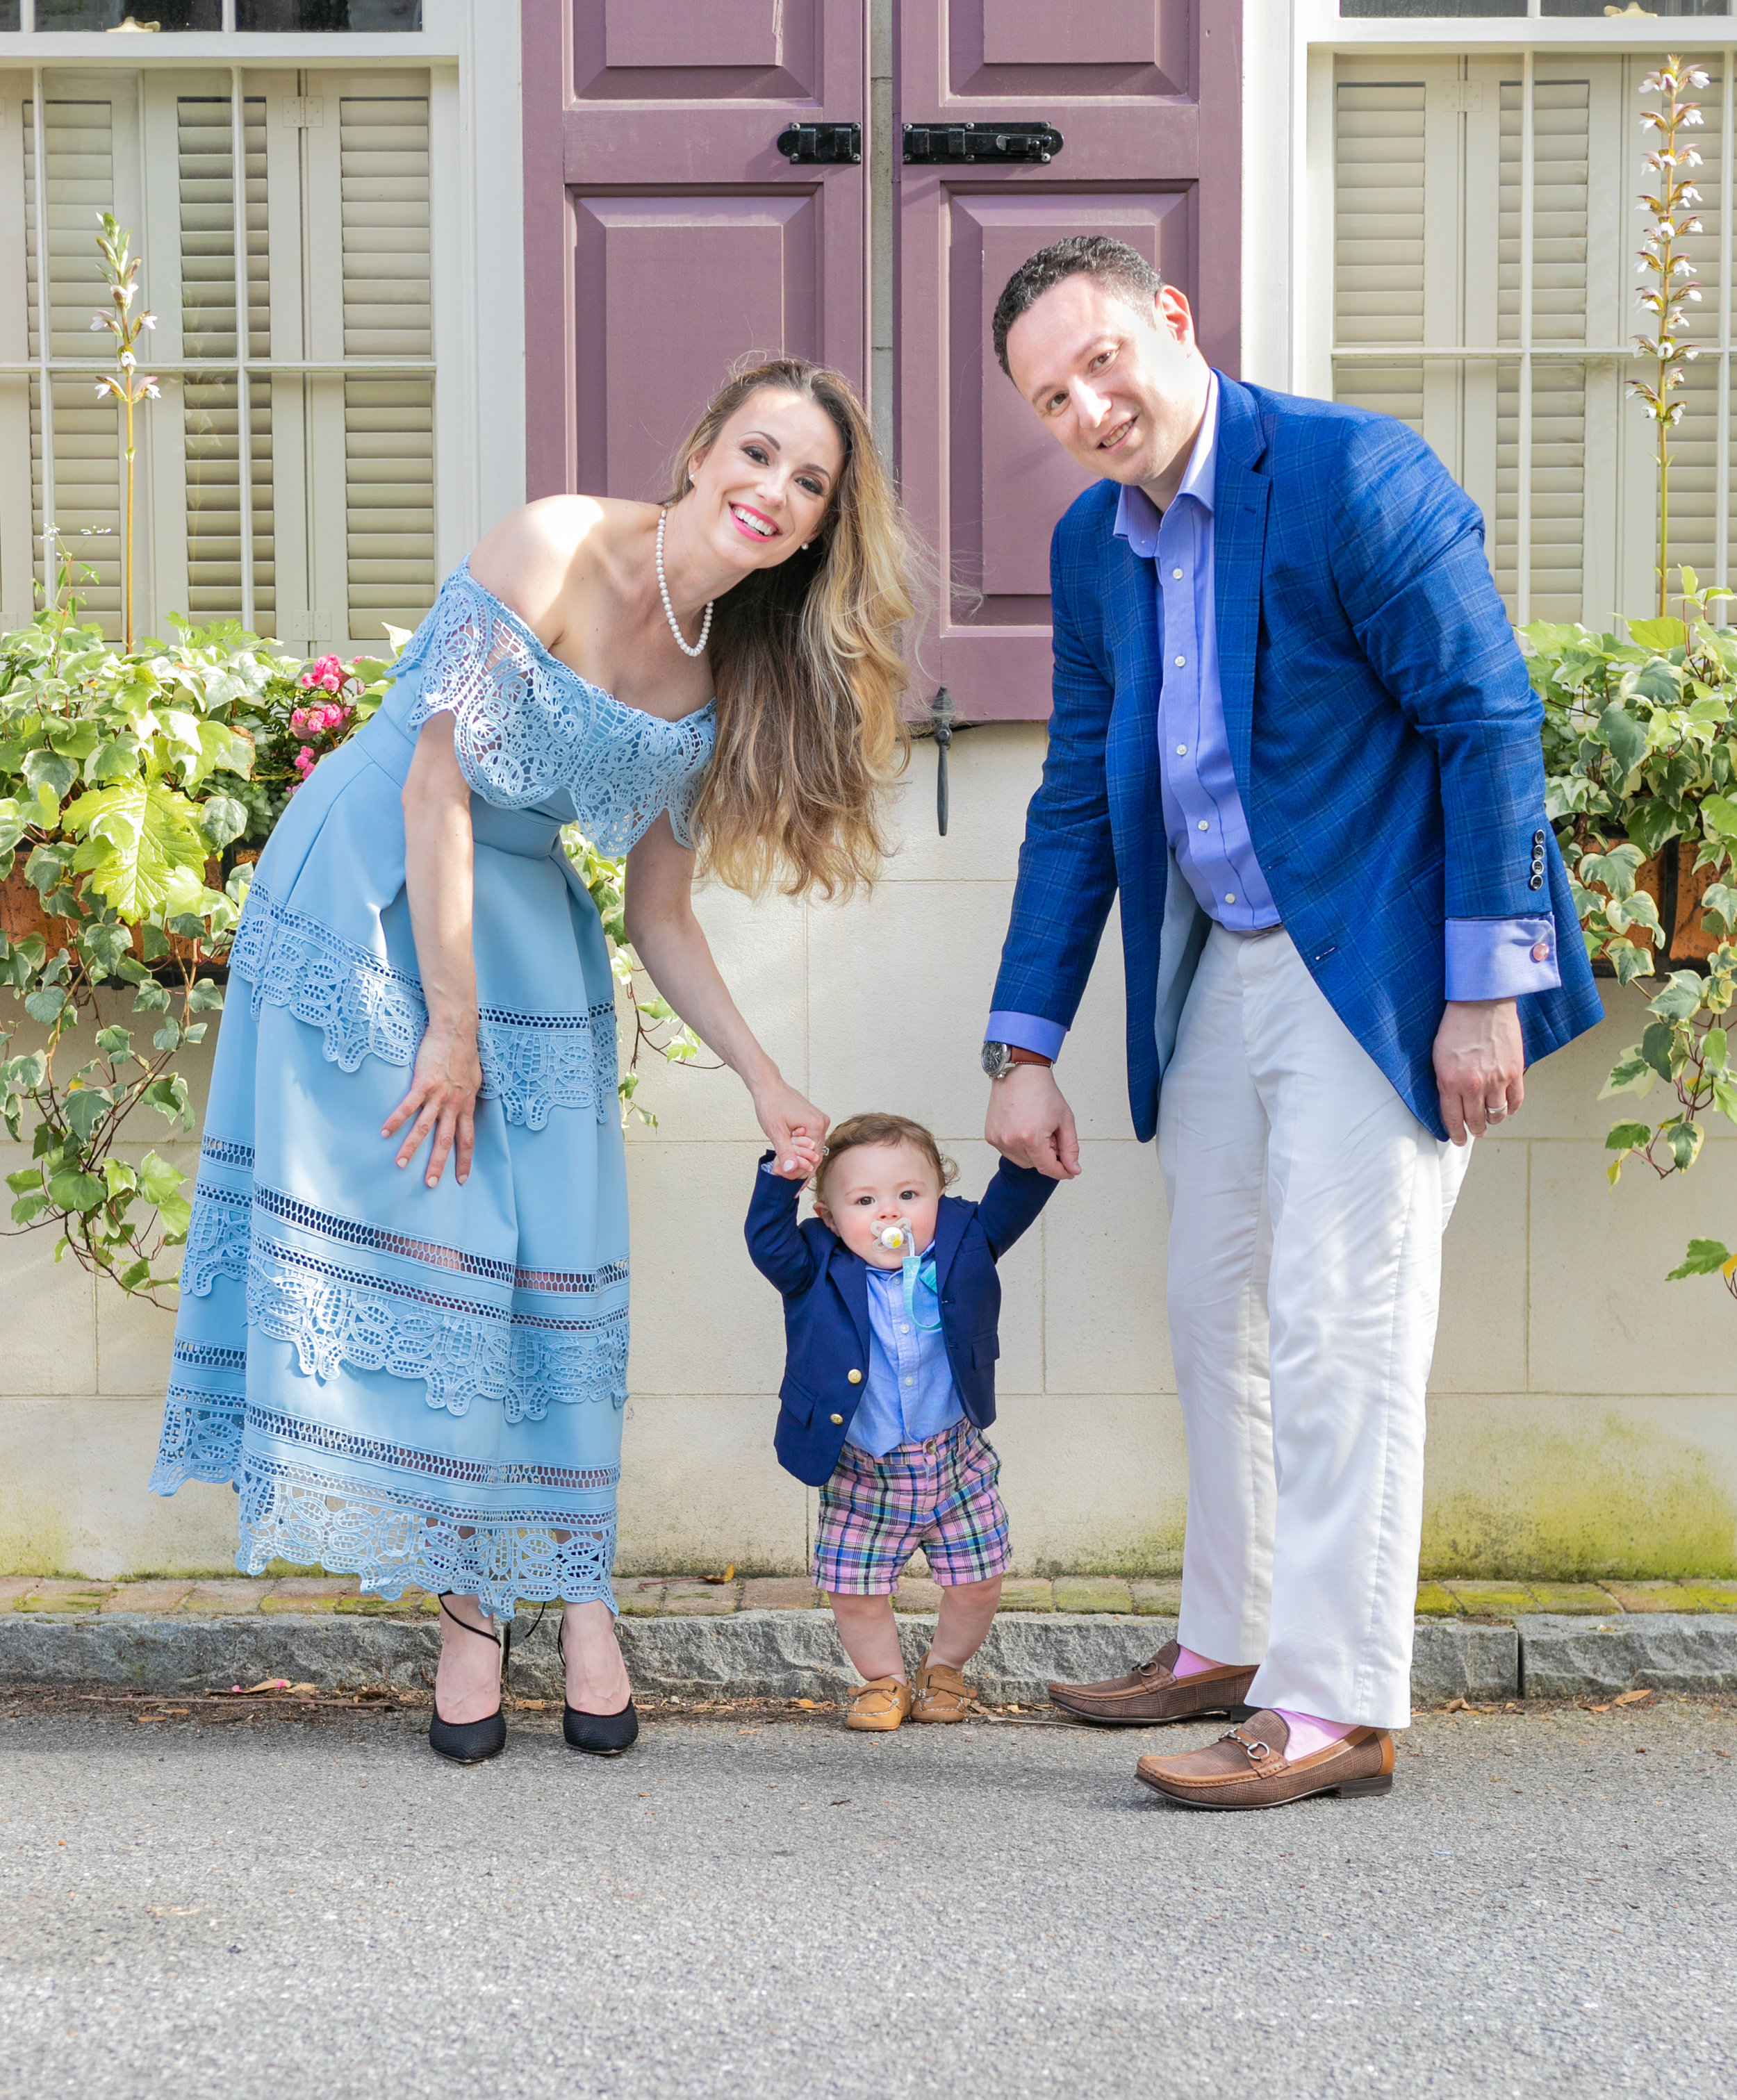 Family portraits, family photographer, family portraits and photographer in Charleston, SC